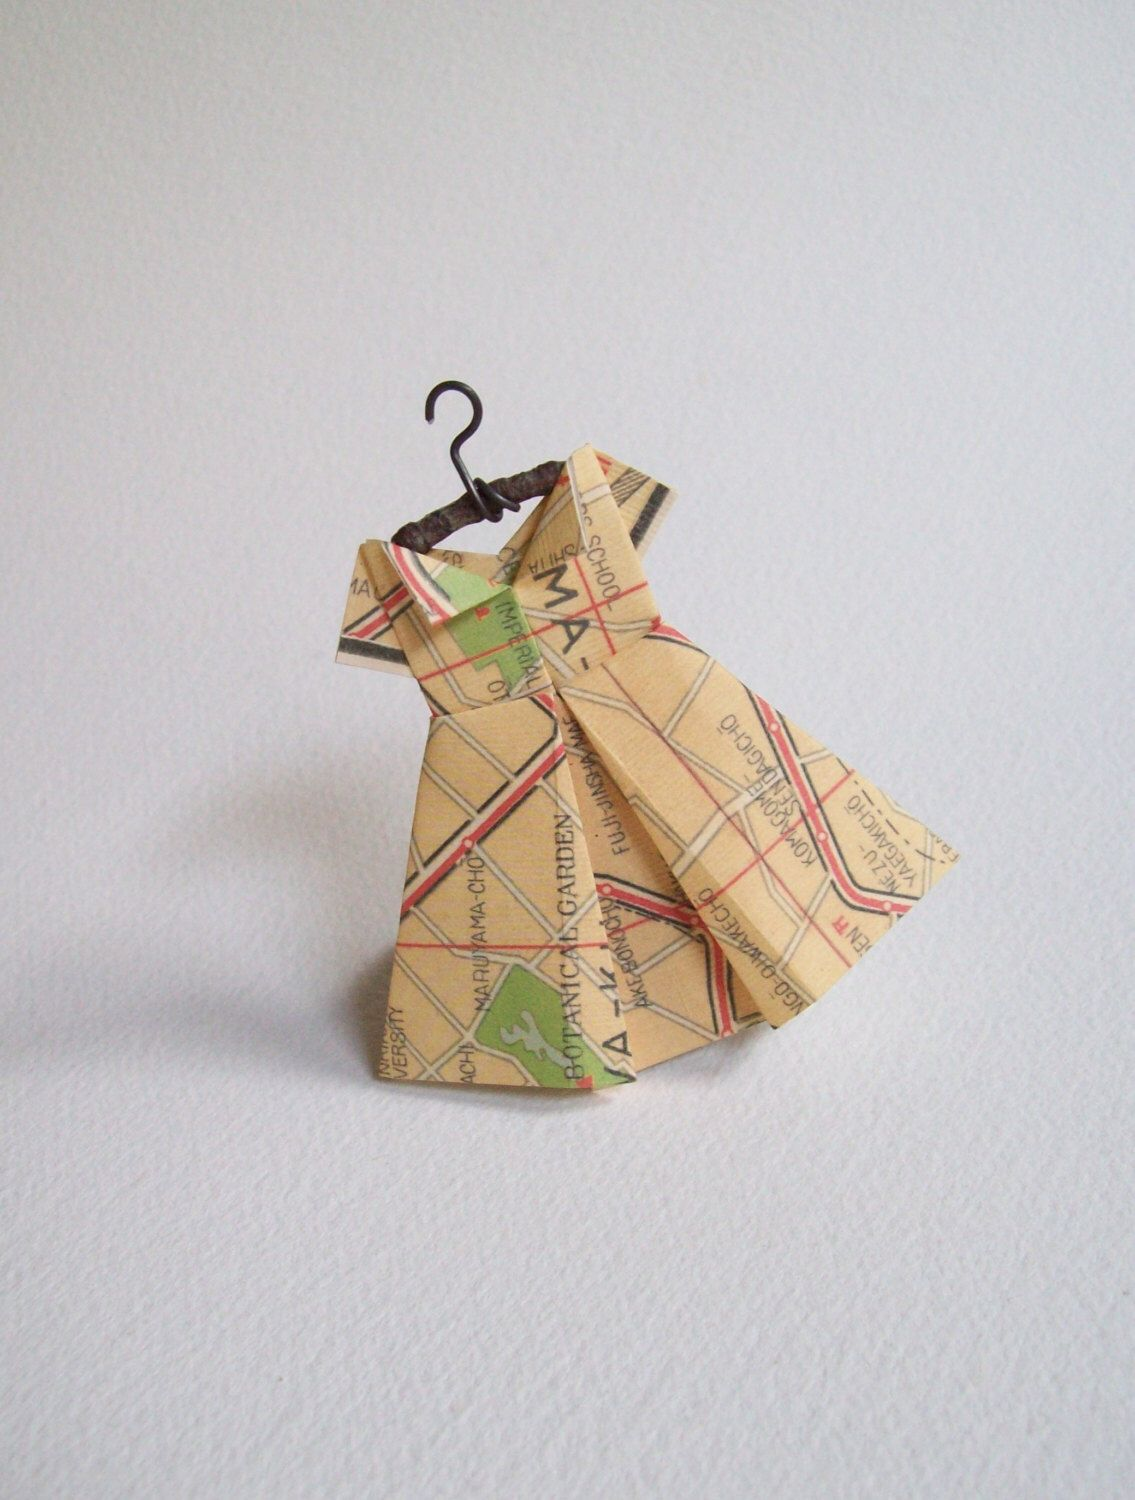 Tokyo boutique tokyo map dress travel theme paper dress tokyo boutique tokyo map dress travel theme paper dress ornament japan baby shower retirement world global japanese theme by scrappymade gumiabroncs Gallery